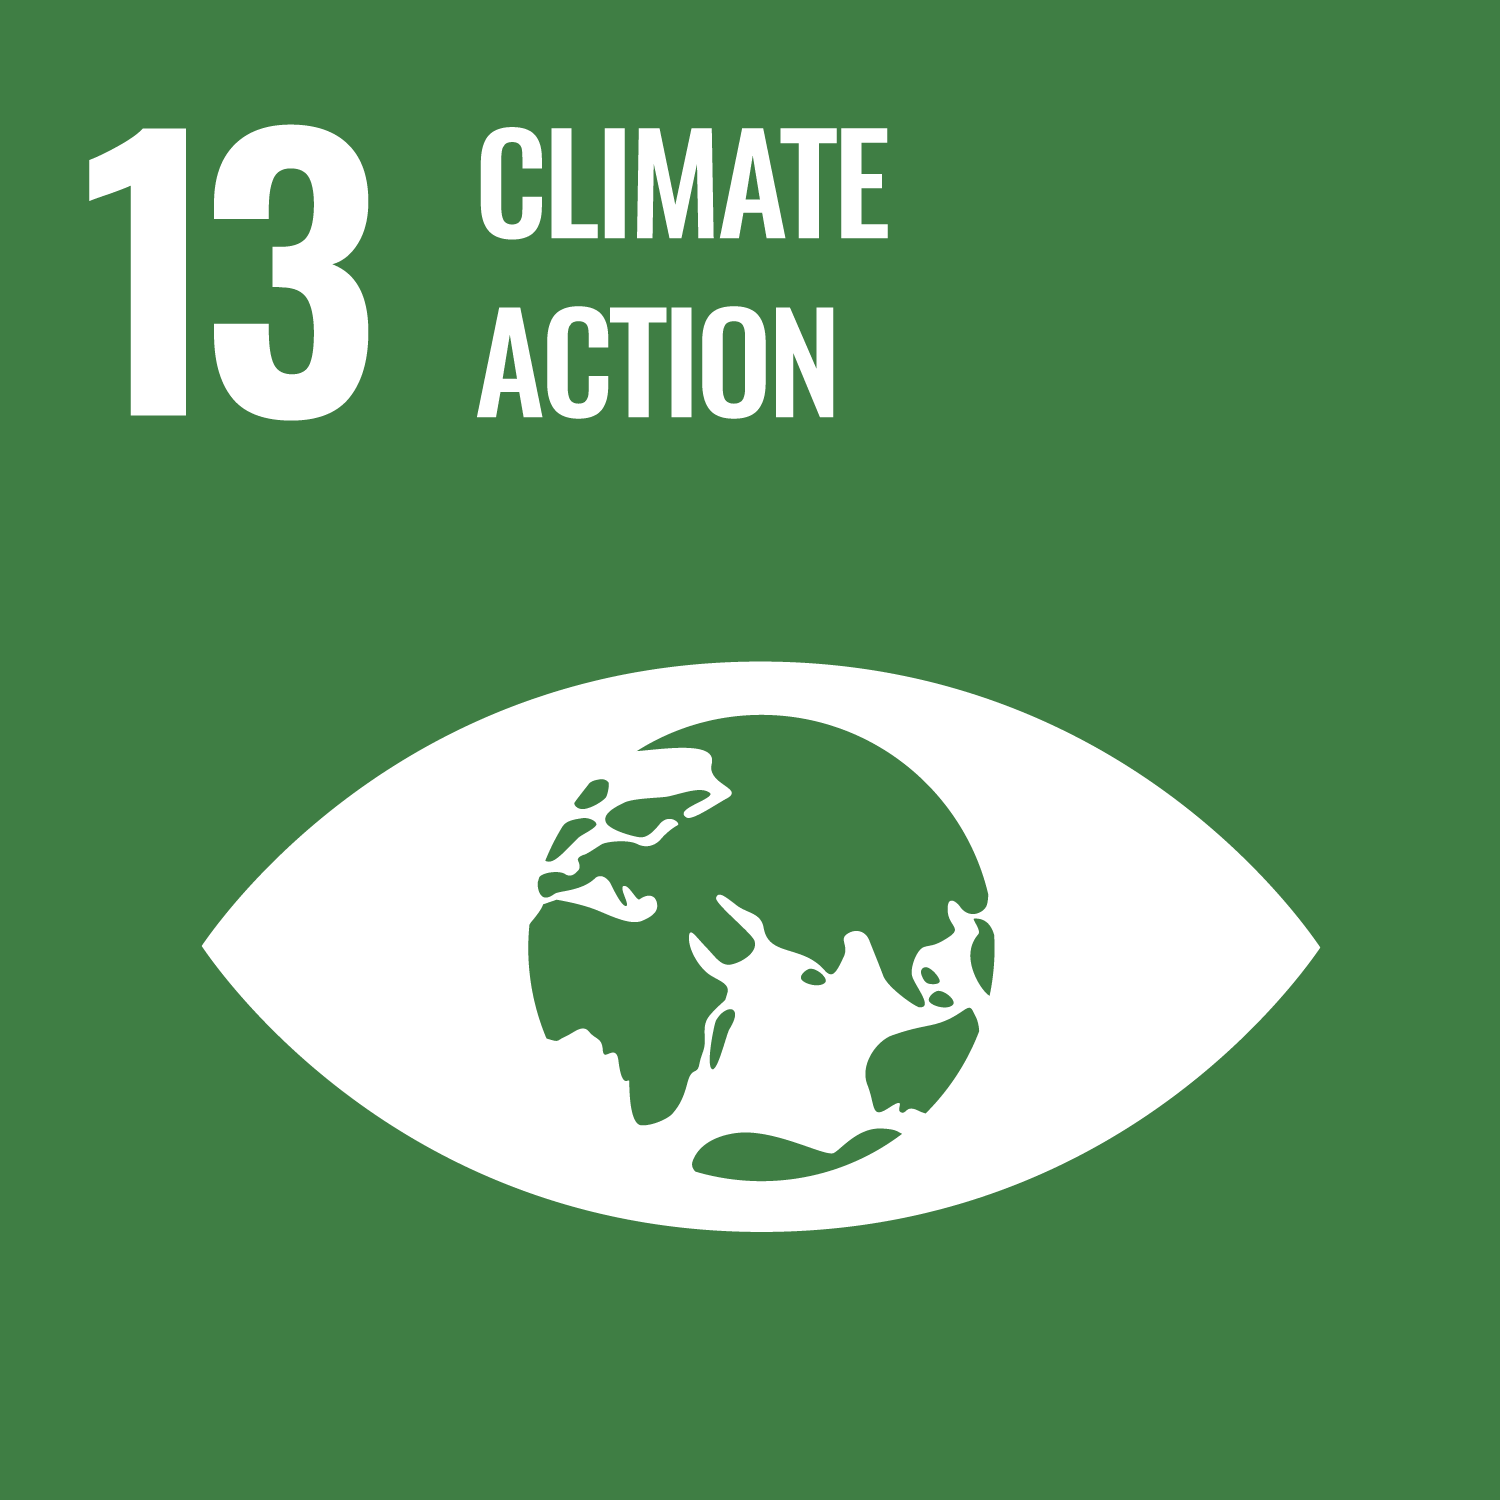 Climate Action - UN Sustainable Development Goal 13